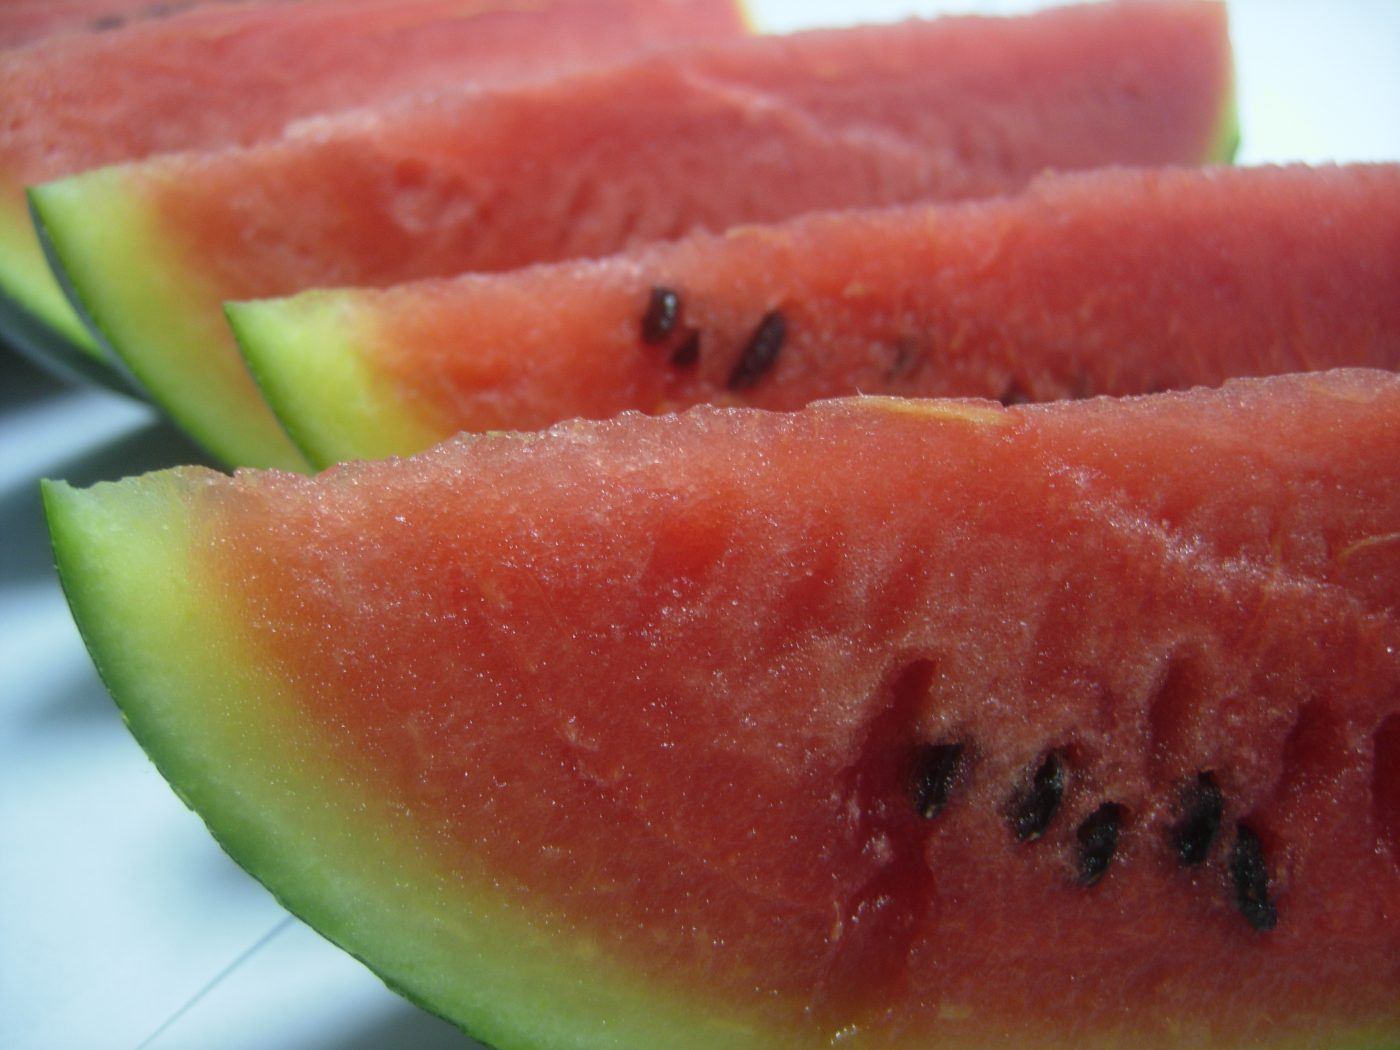 watermelon-juicy-watermelon-pieces- (credit: kudla jana)